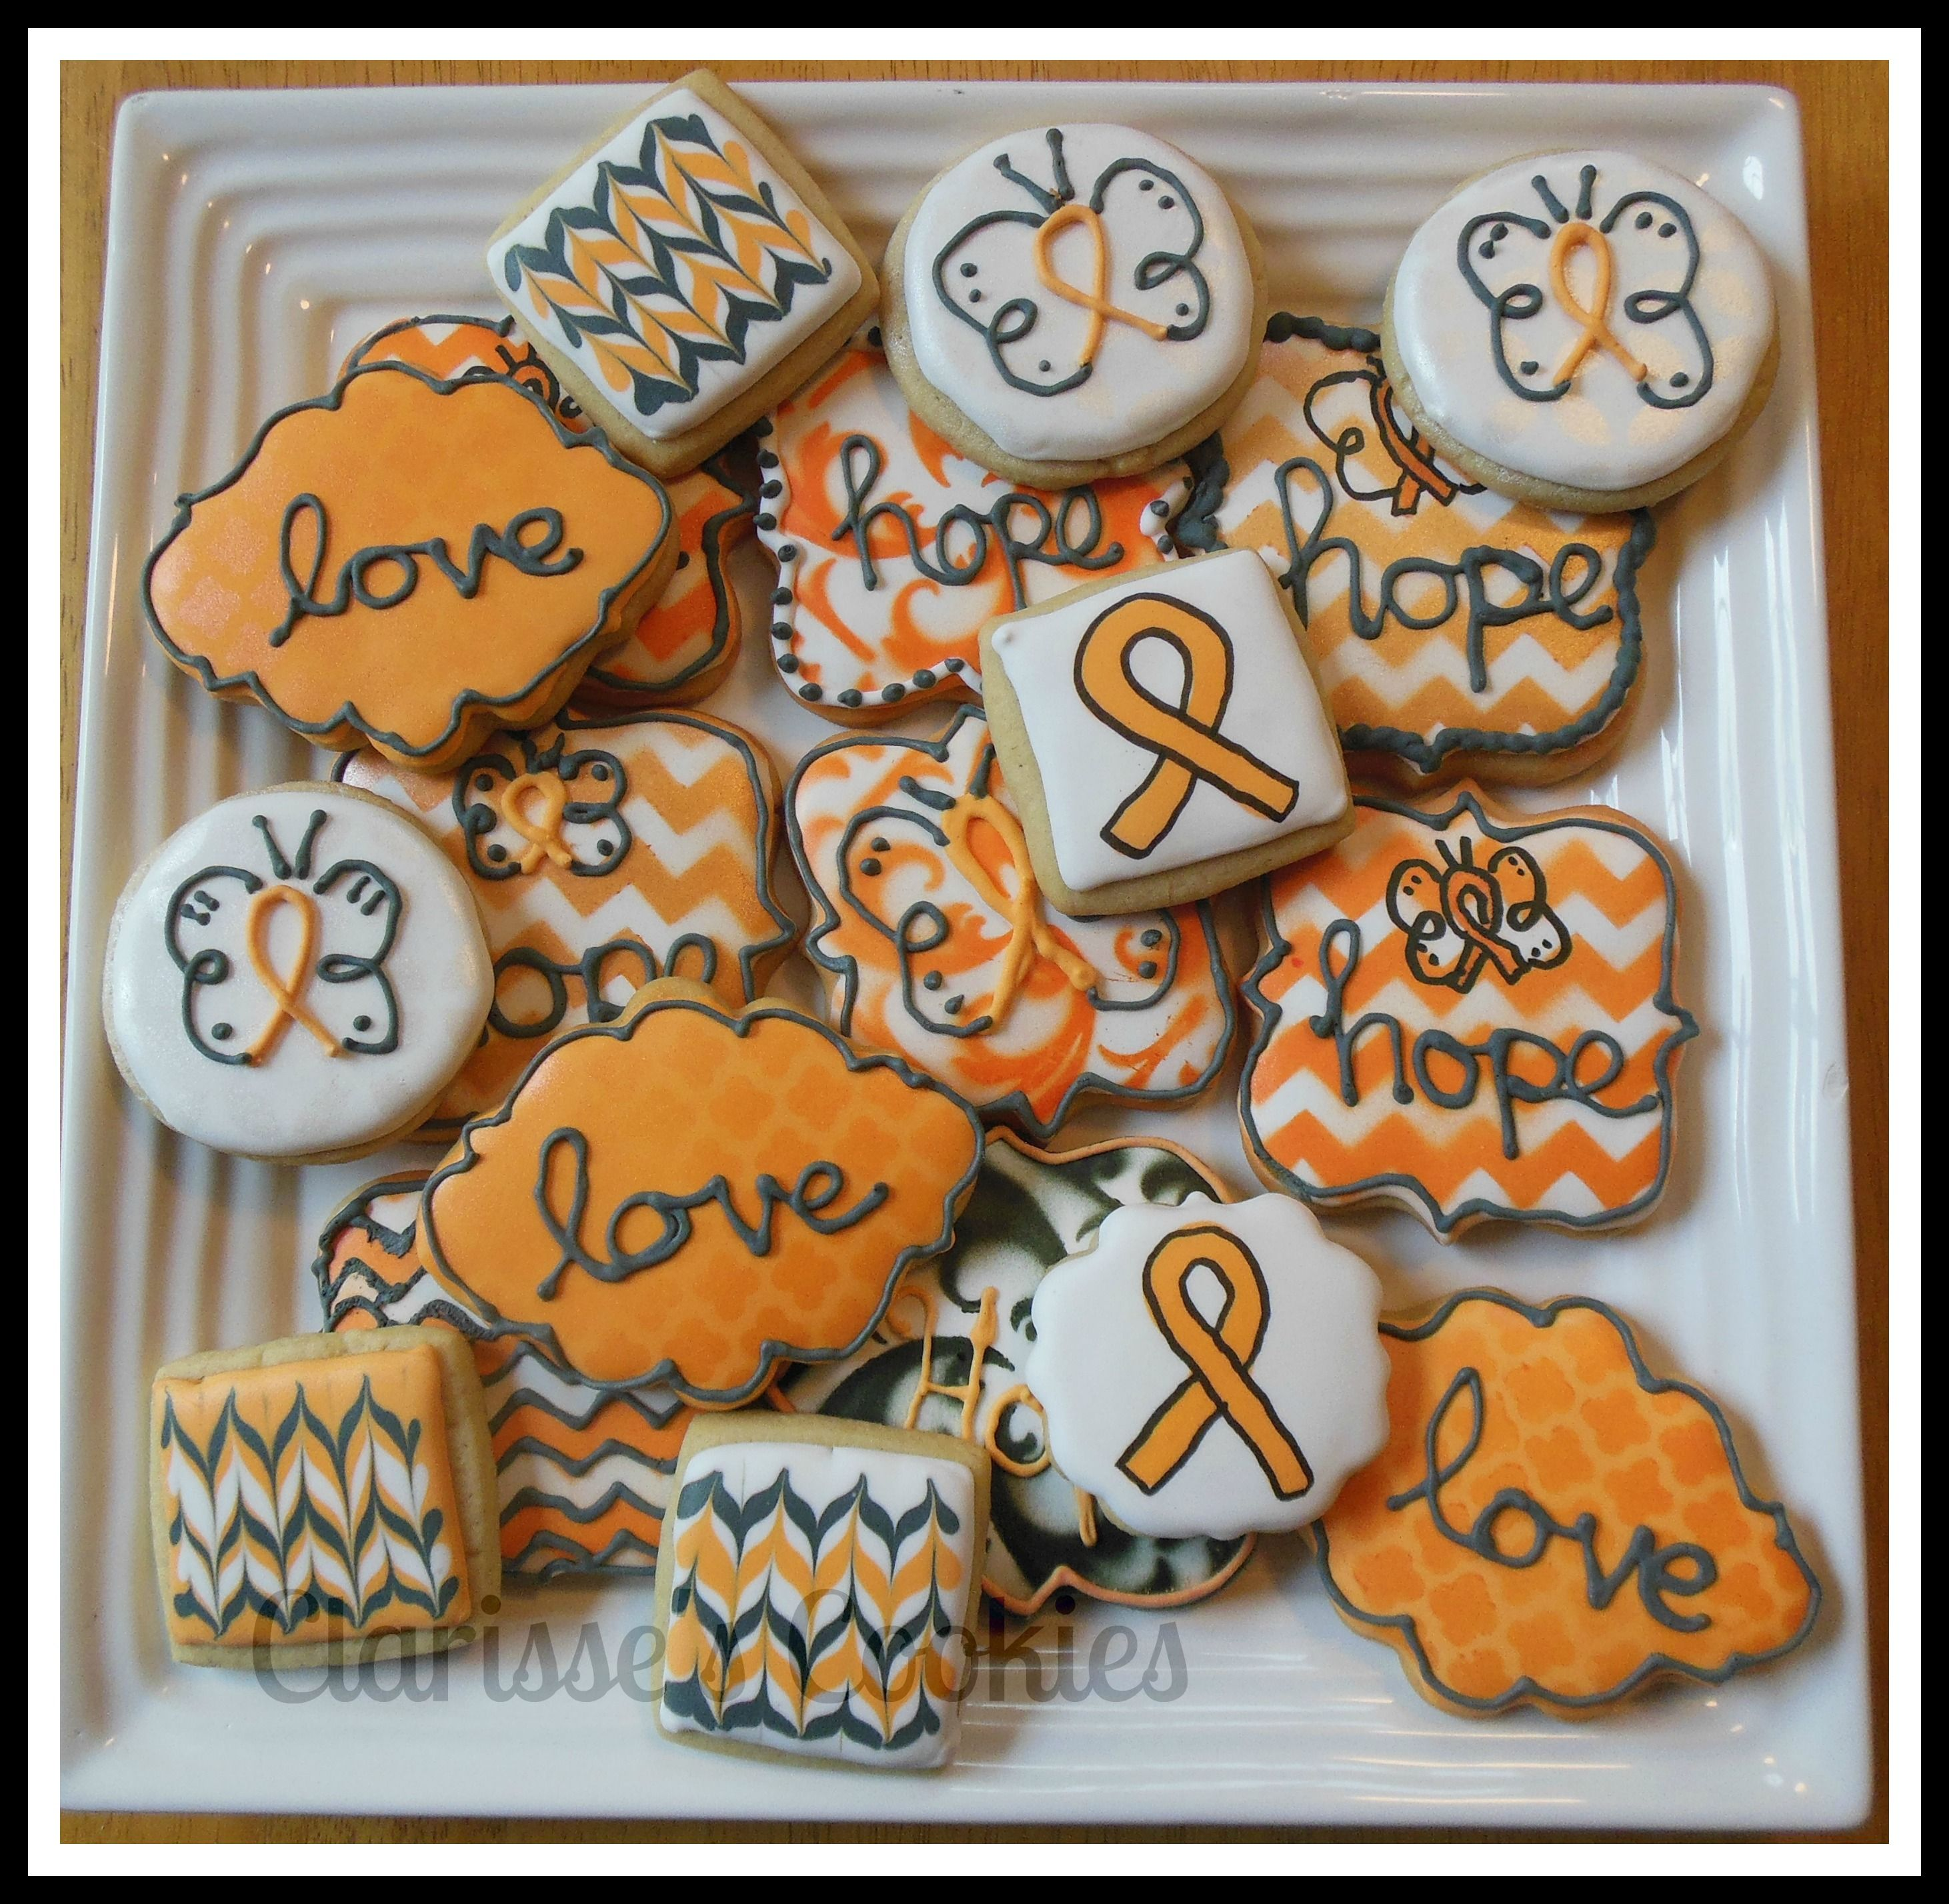 leukemia cookies I did for a benefit butterfly idea saw by Custom